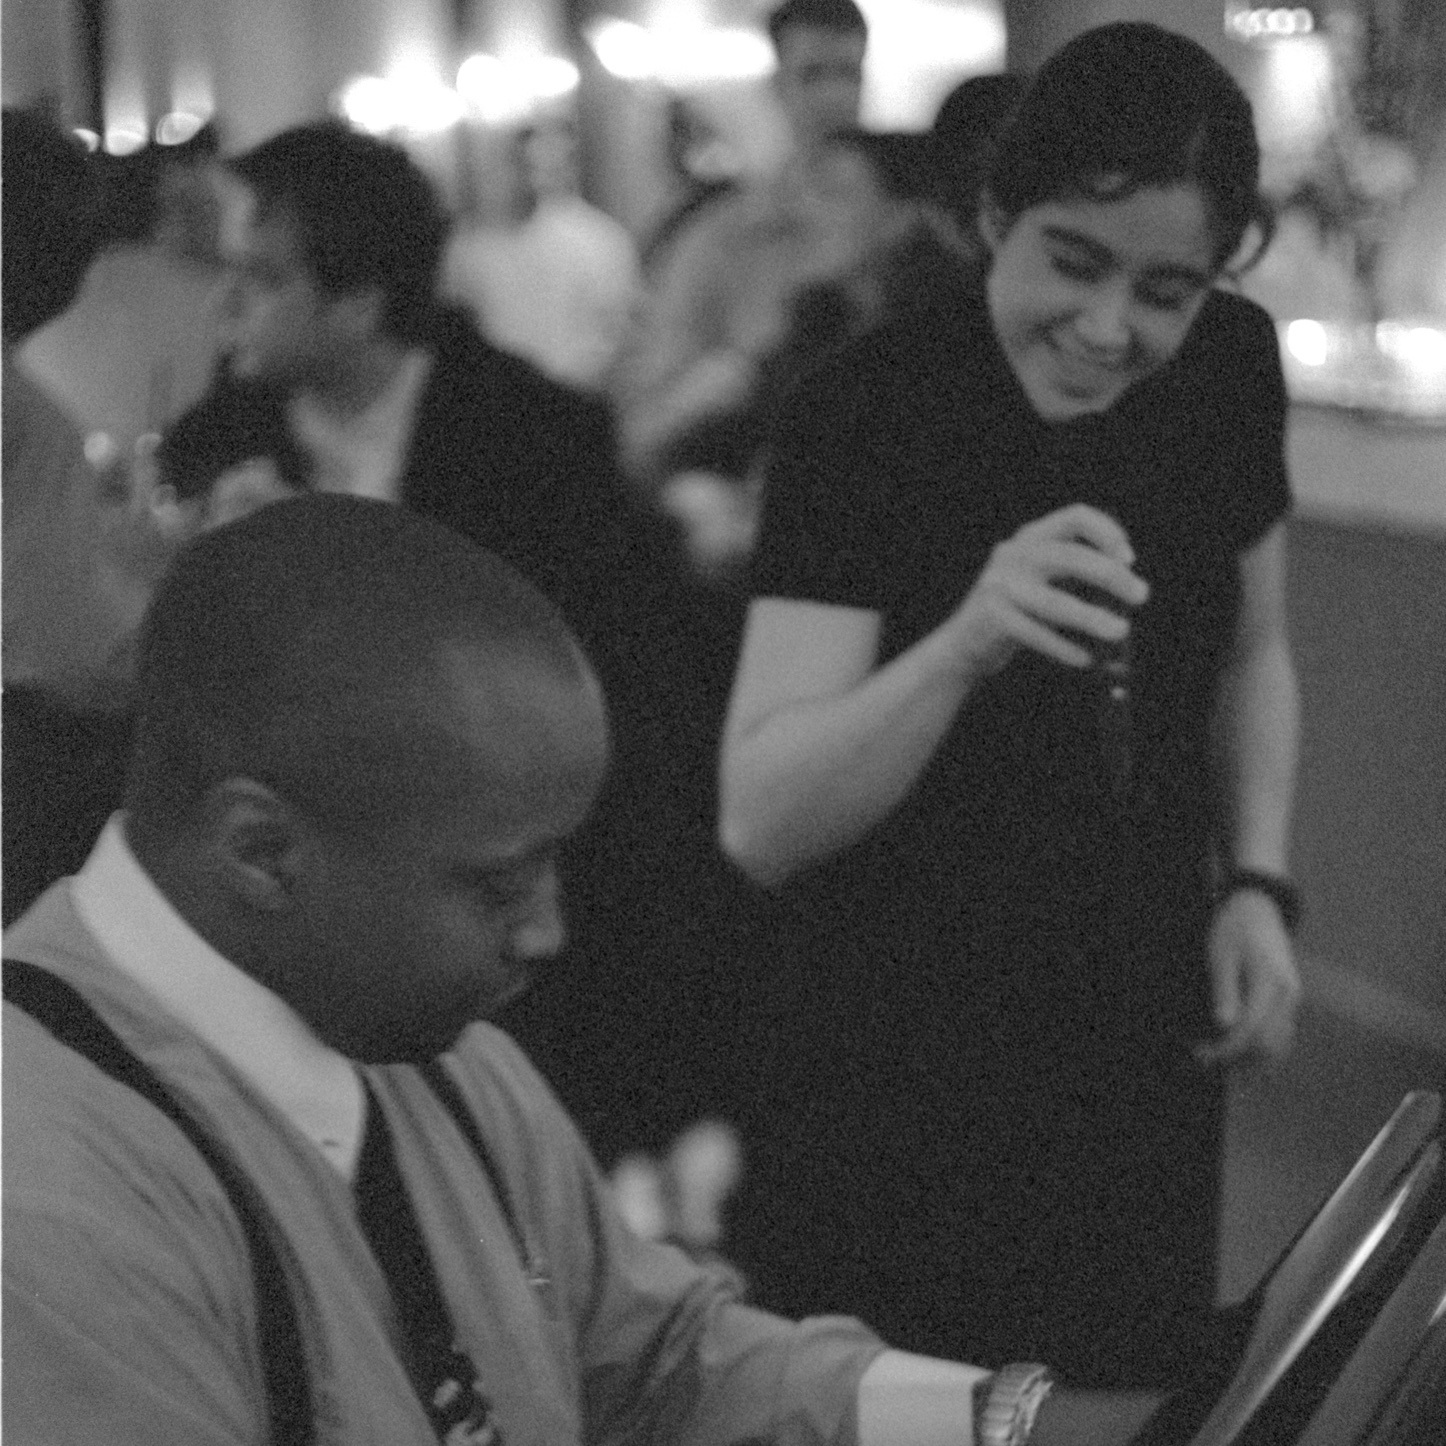 An example of me singing AT people (with far less make up than my promo pic) at another bar in DC with pianist Derrick Finch around this same time.